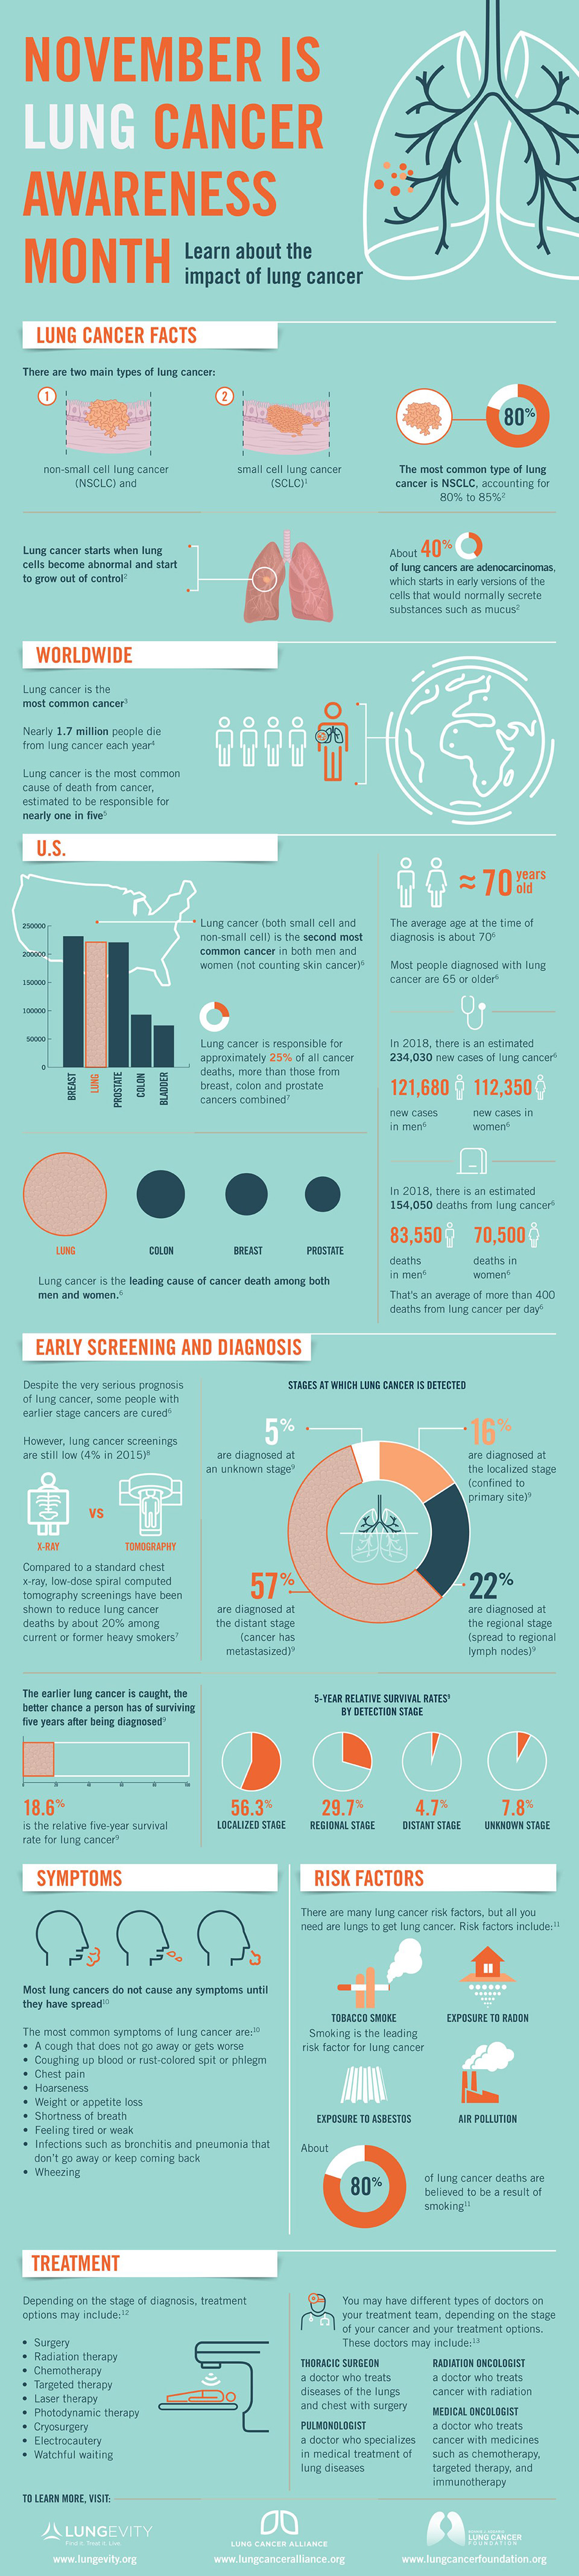 Lung Cancer Infographic – November is National Lung Cancer Awareness Month